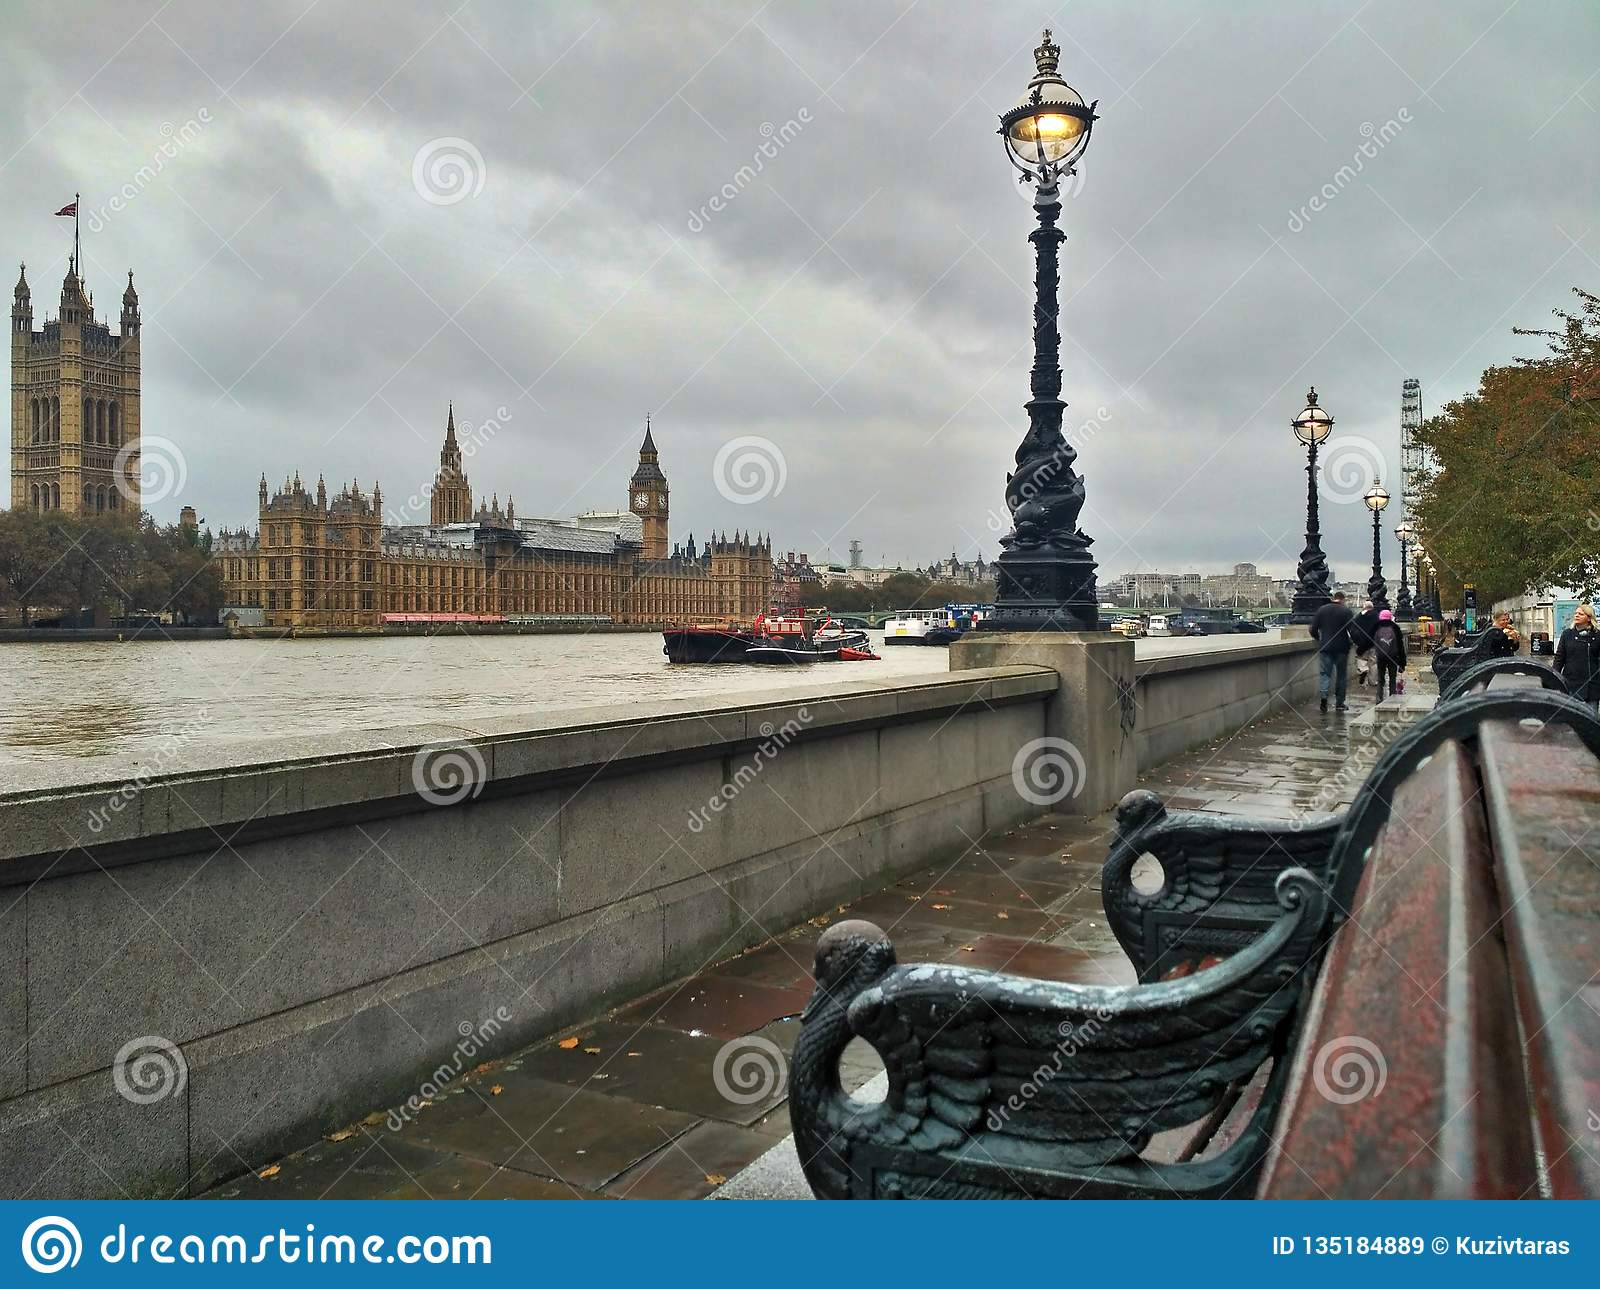 London / Great Britain - November 01 2016: Riverside. Panoramic view on the River Thames, London Eye, Palace of Westminster